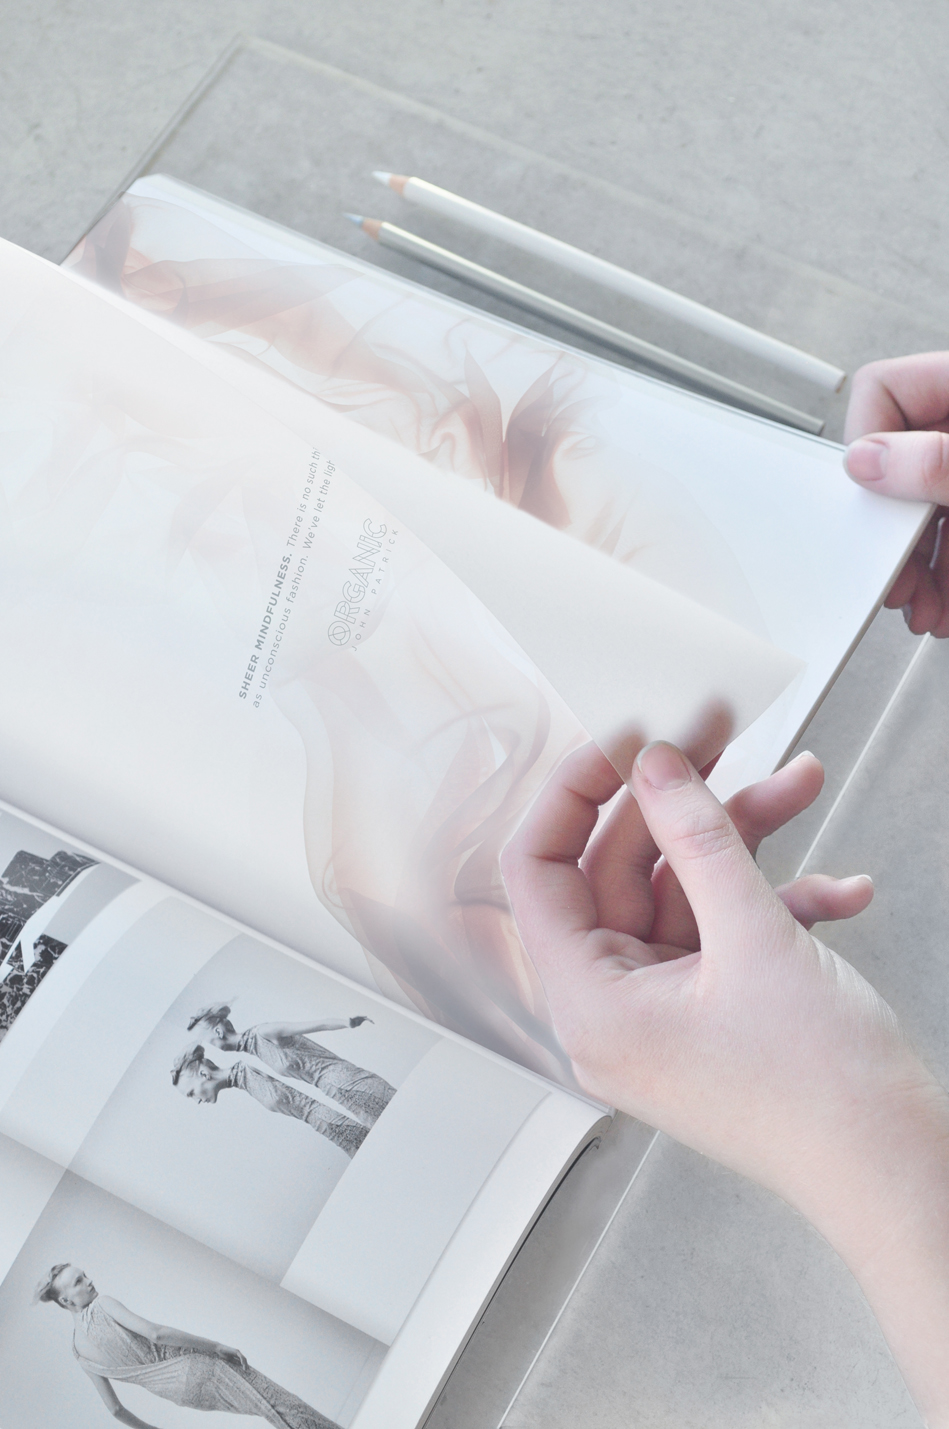 Magazine_Detail_Hands1.jpg